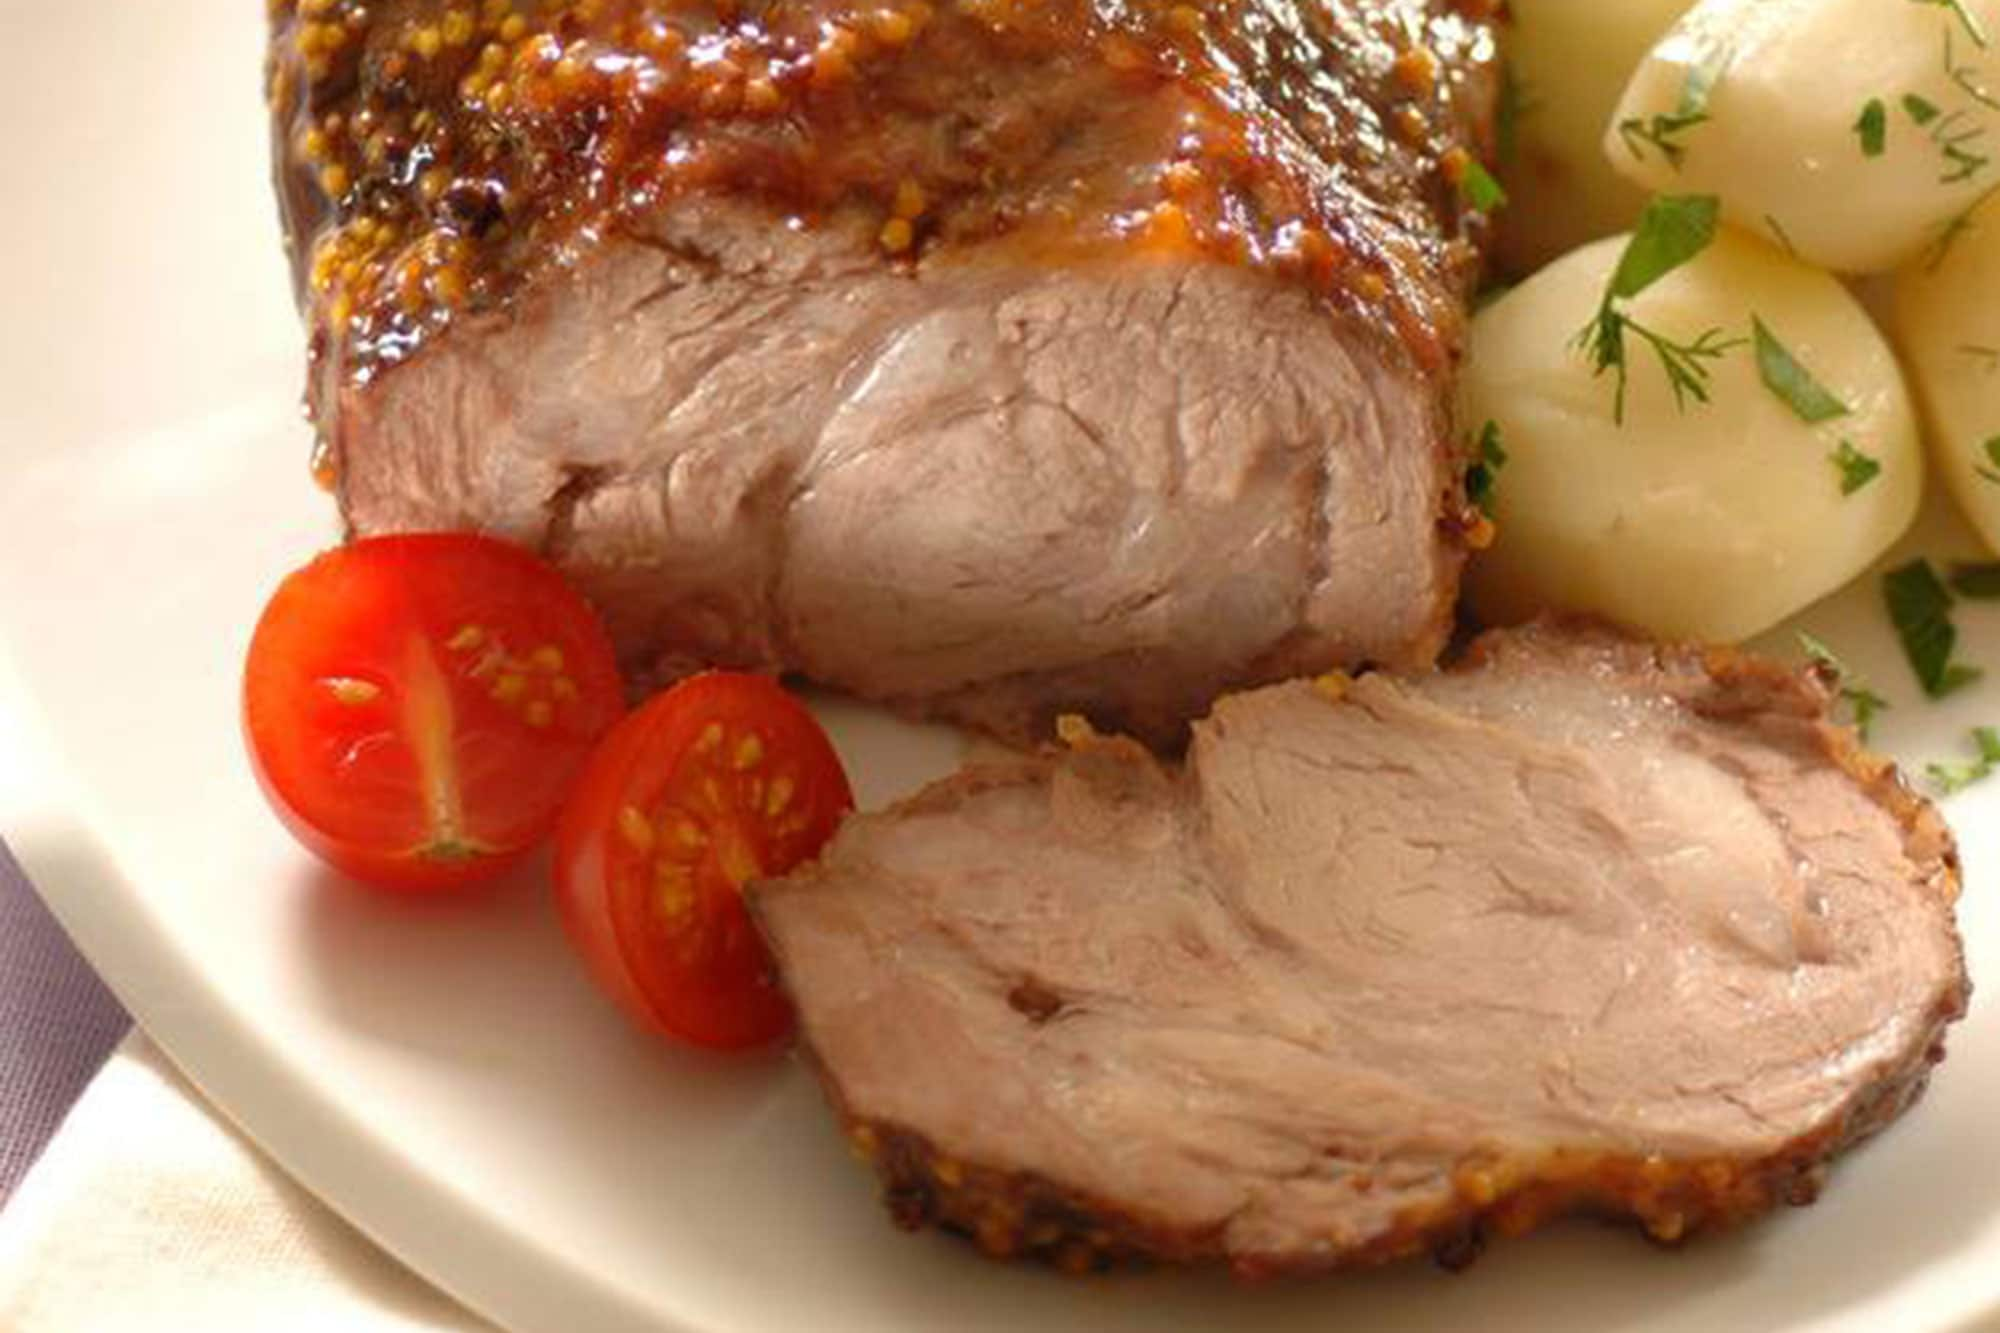 Schab is a typical meat you can find in any restaurant in Poland